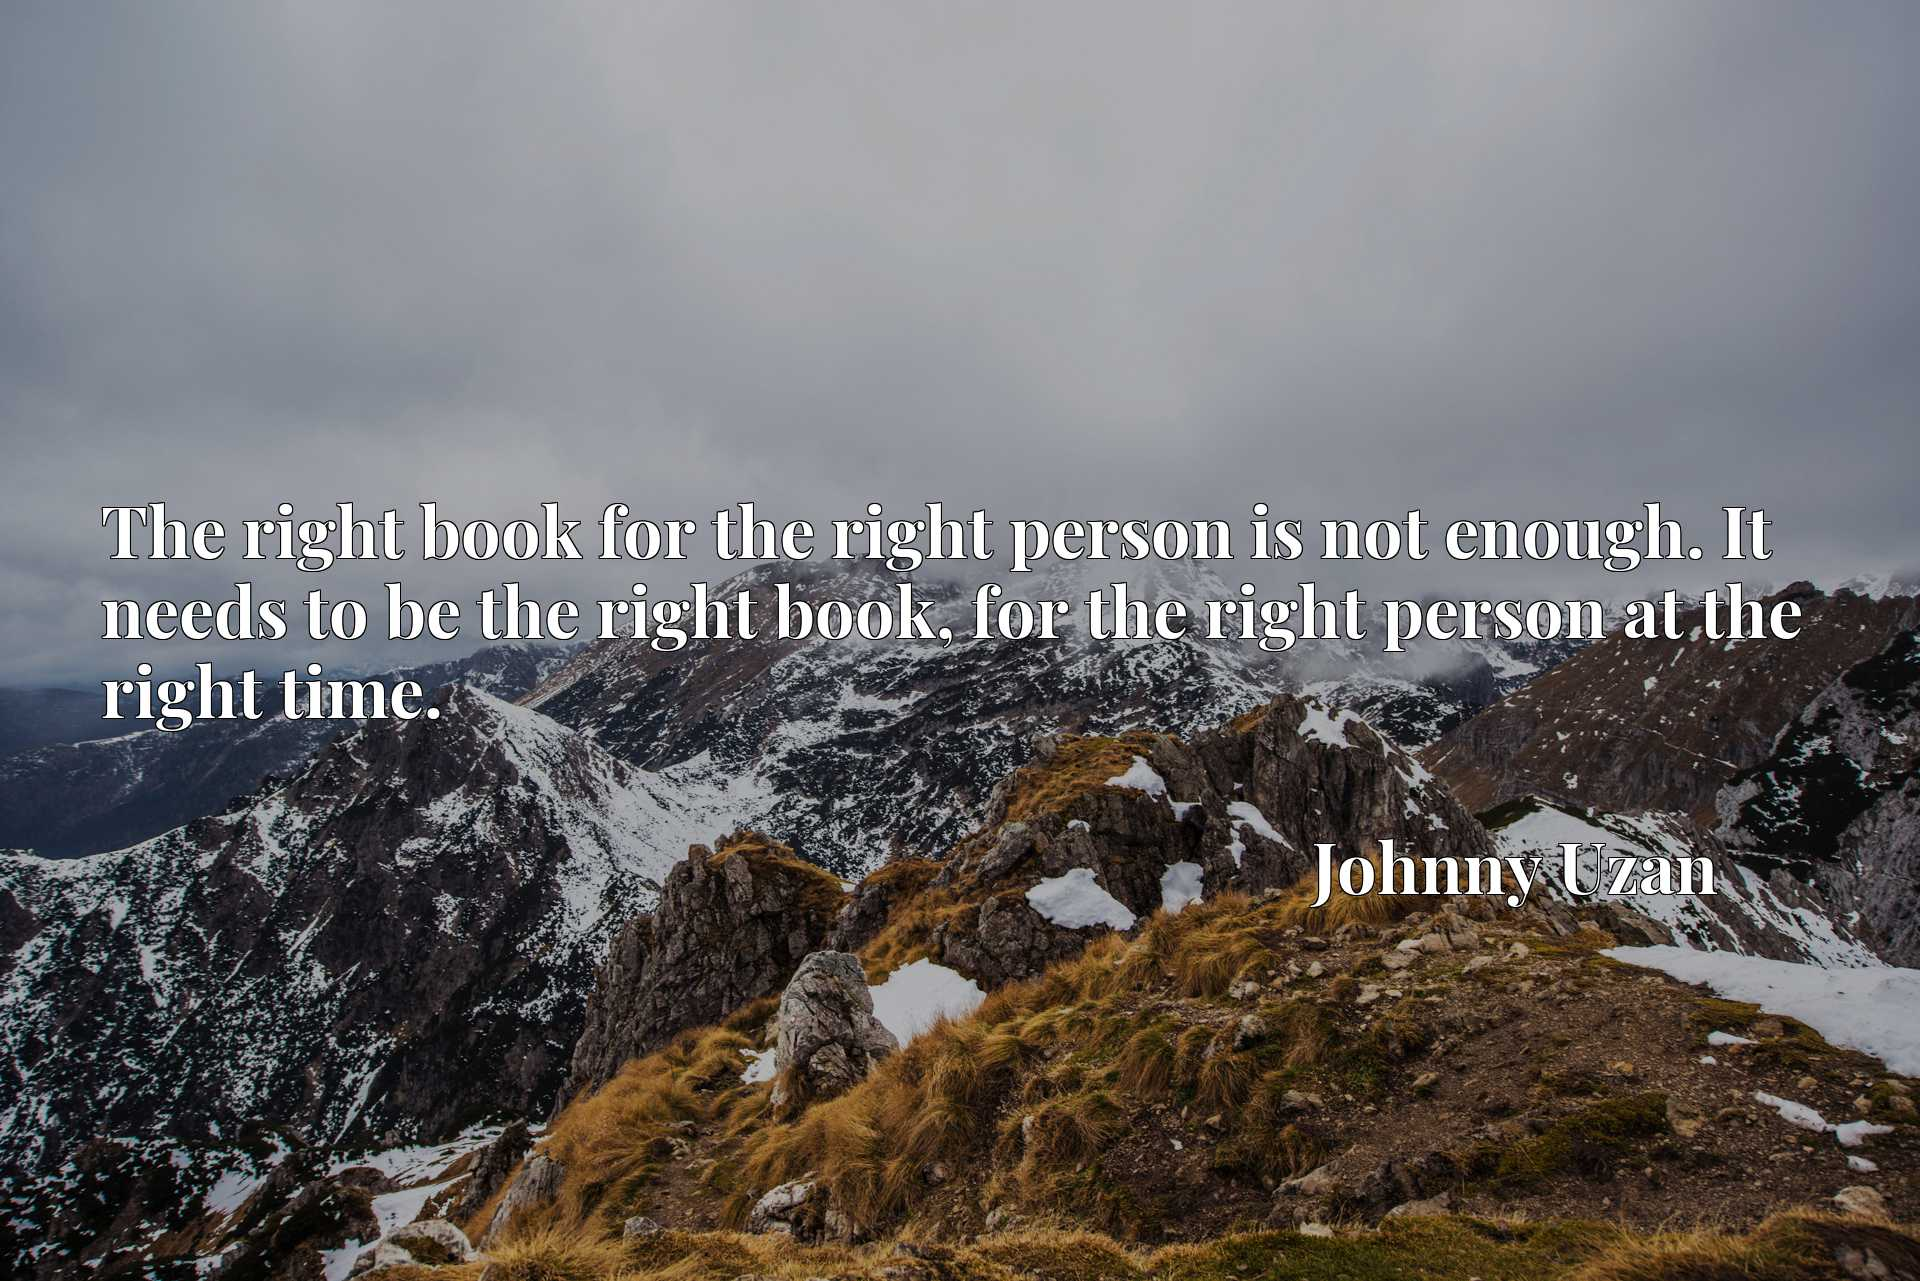 Quote Picture :The right book for the right person is not enough. It needs to be the right book, for the right person at the right time.